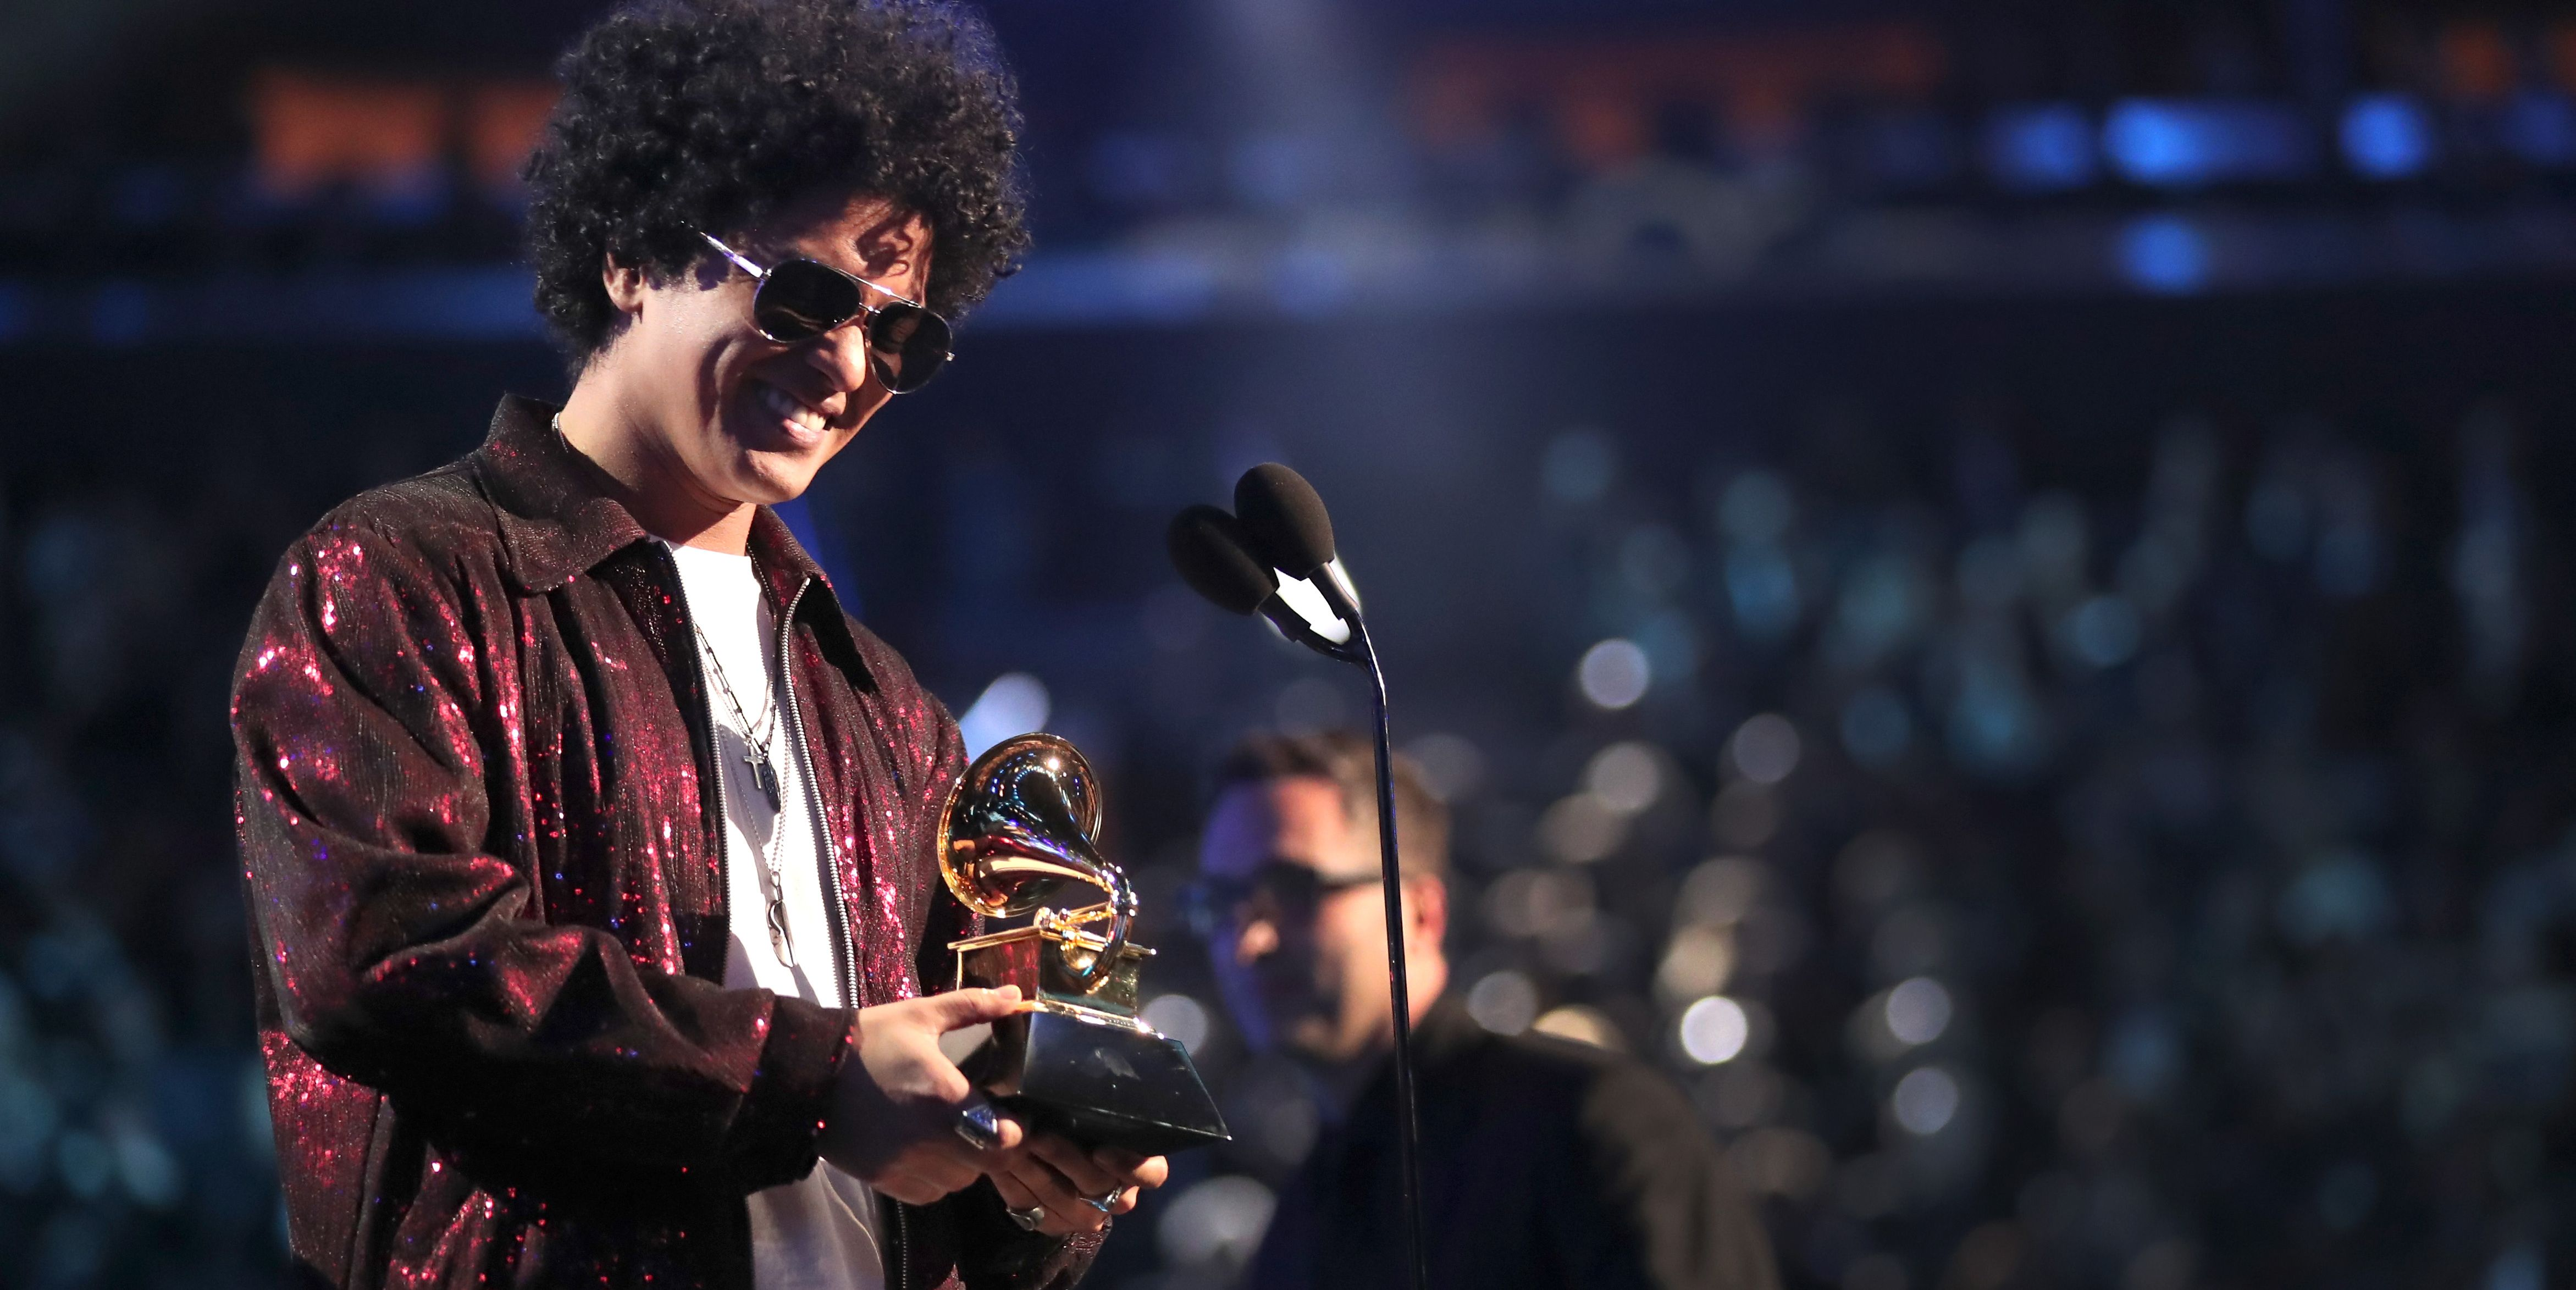 Grammy 2019 Live: Where To Stream Grammy Awards